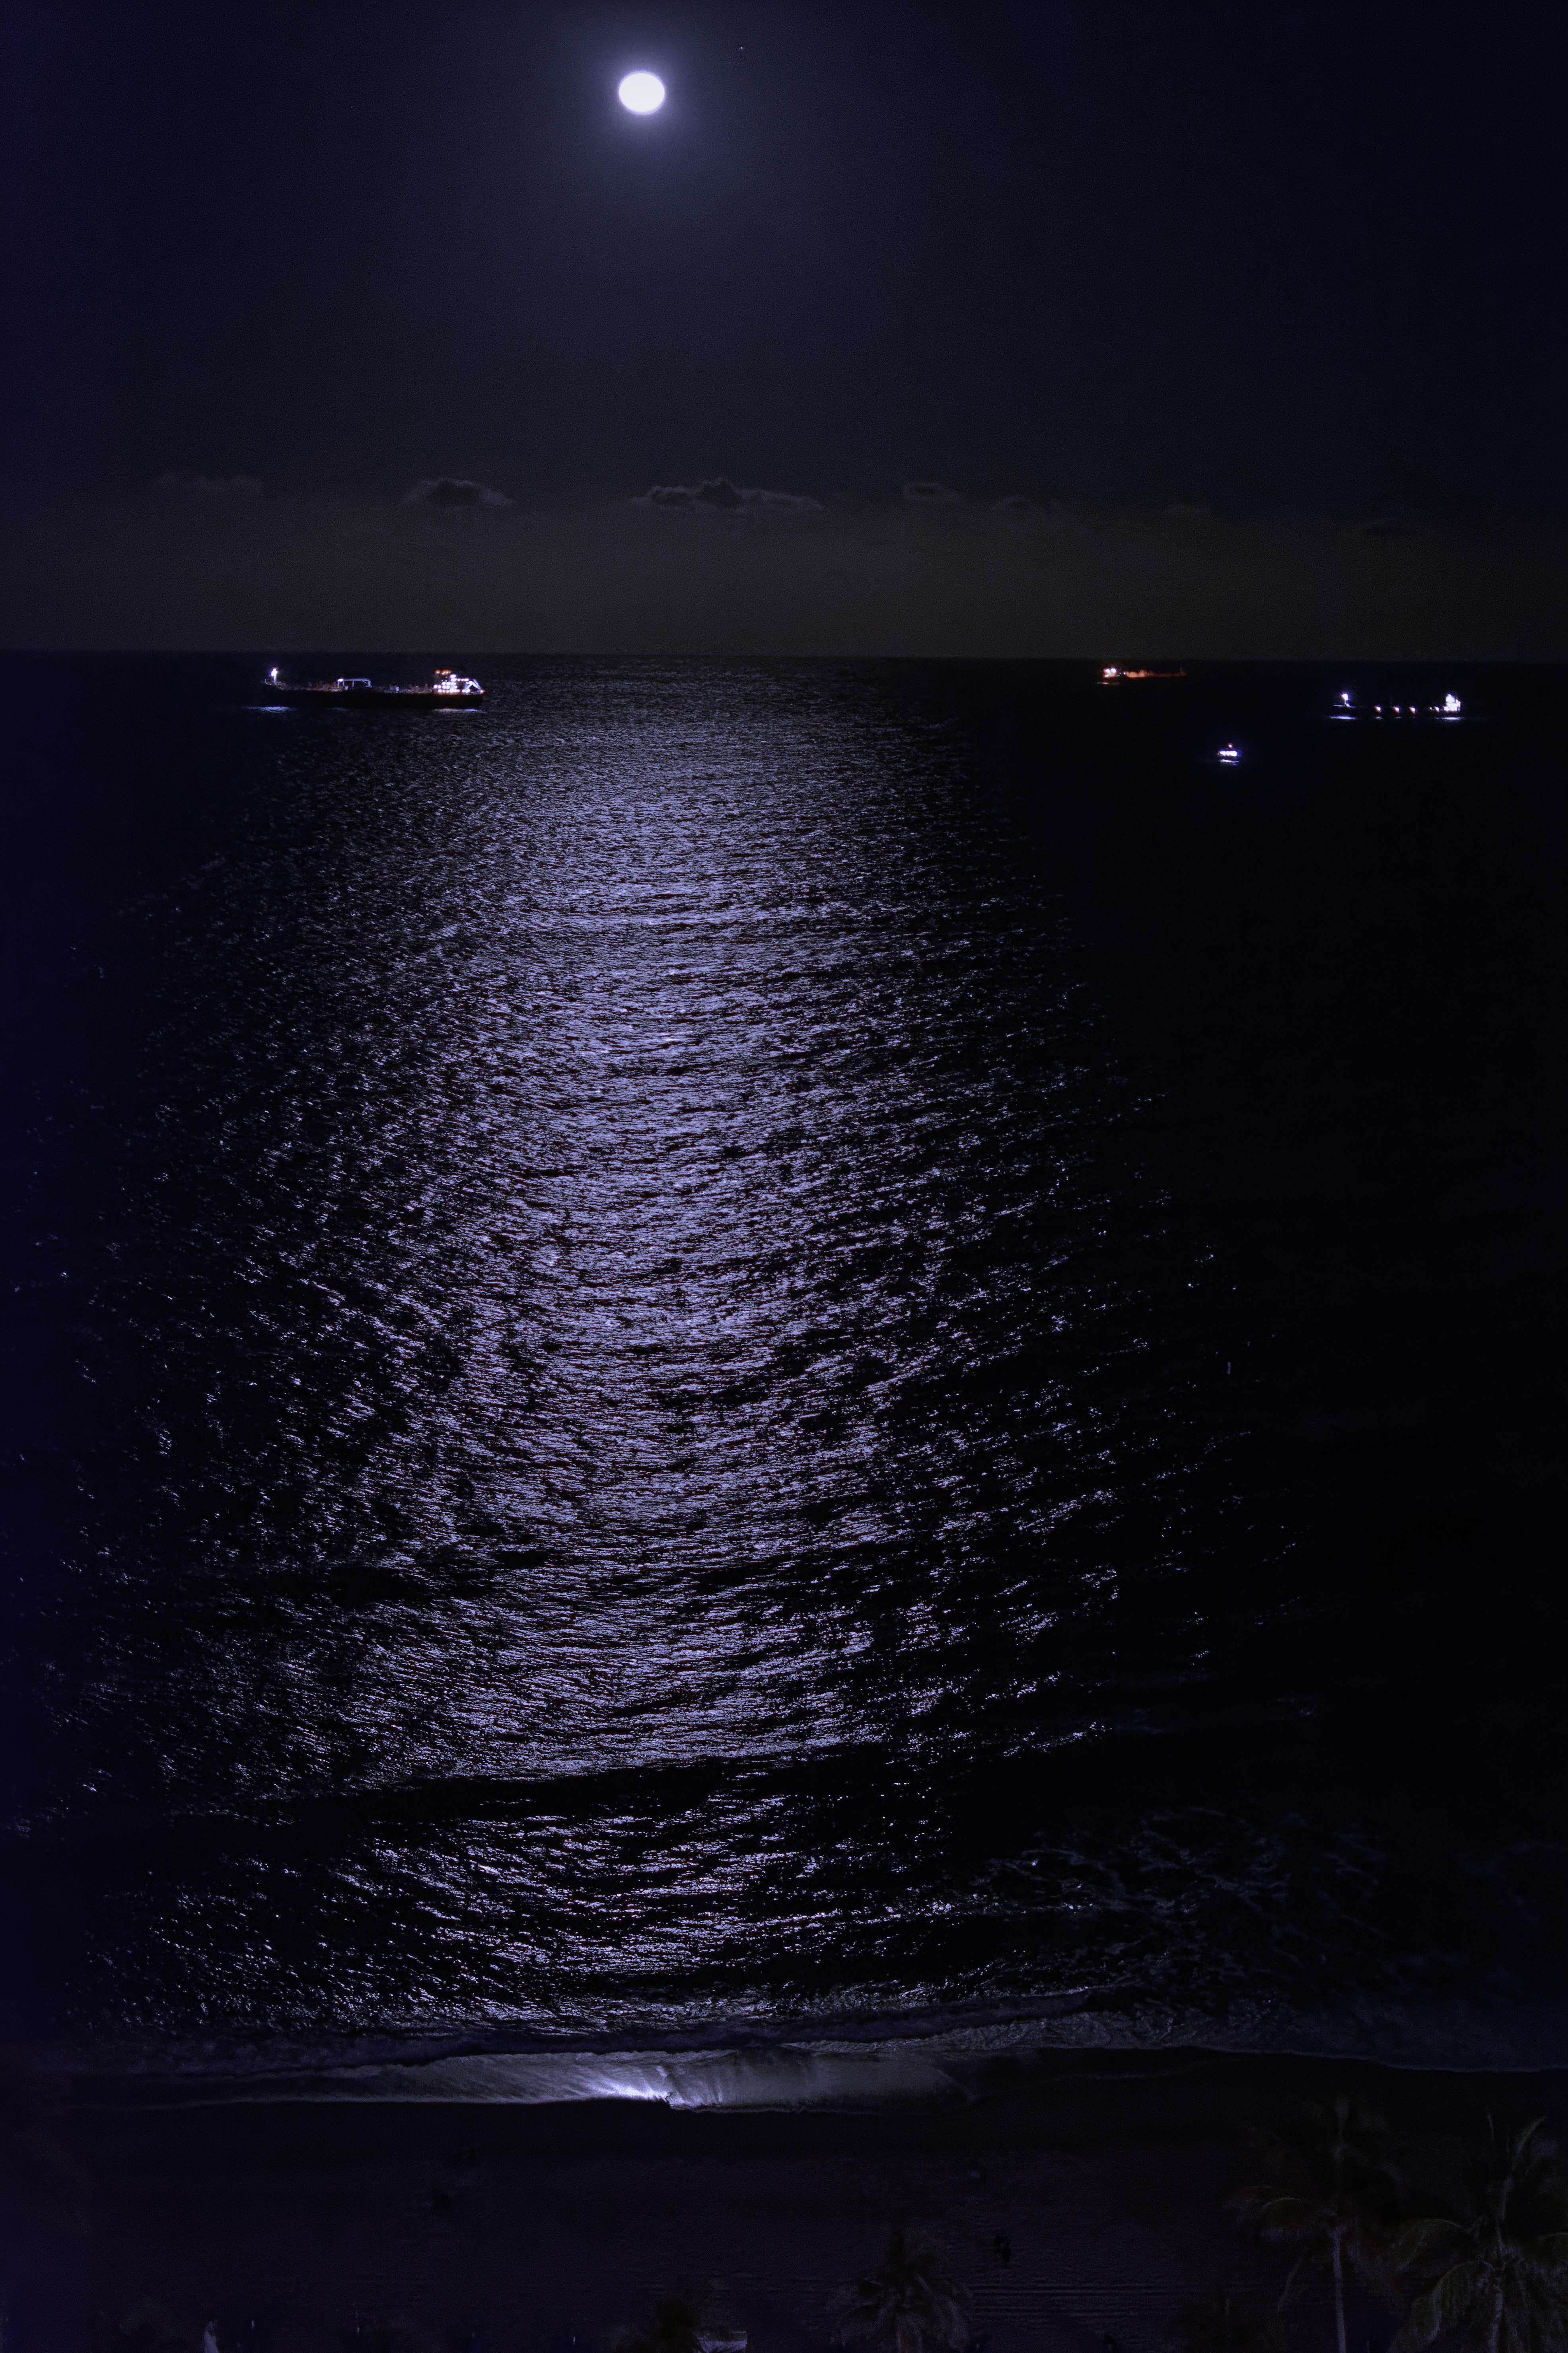 Moonlight across the ocean - 7264